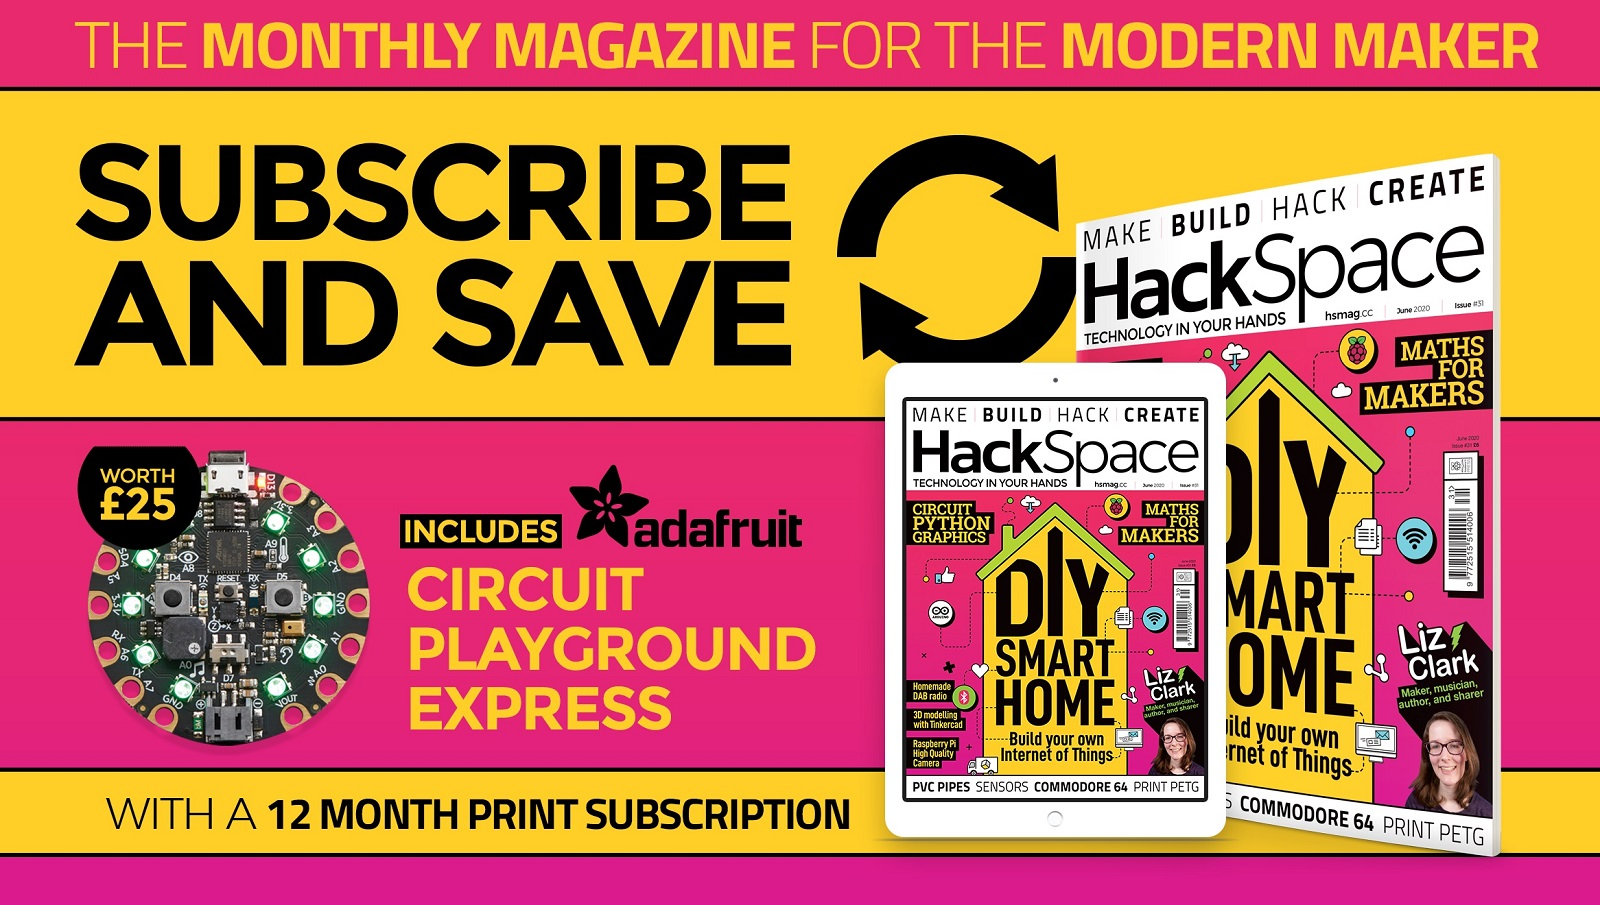 HackSpace magazine issue 31 cover